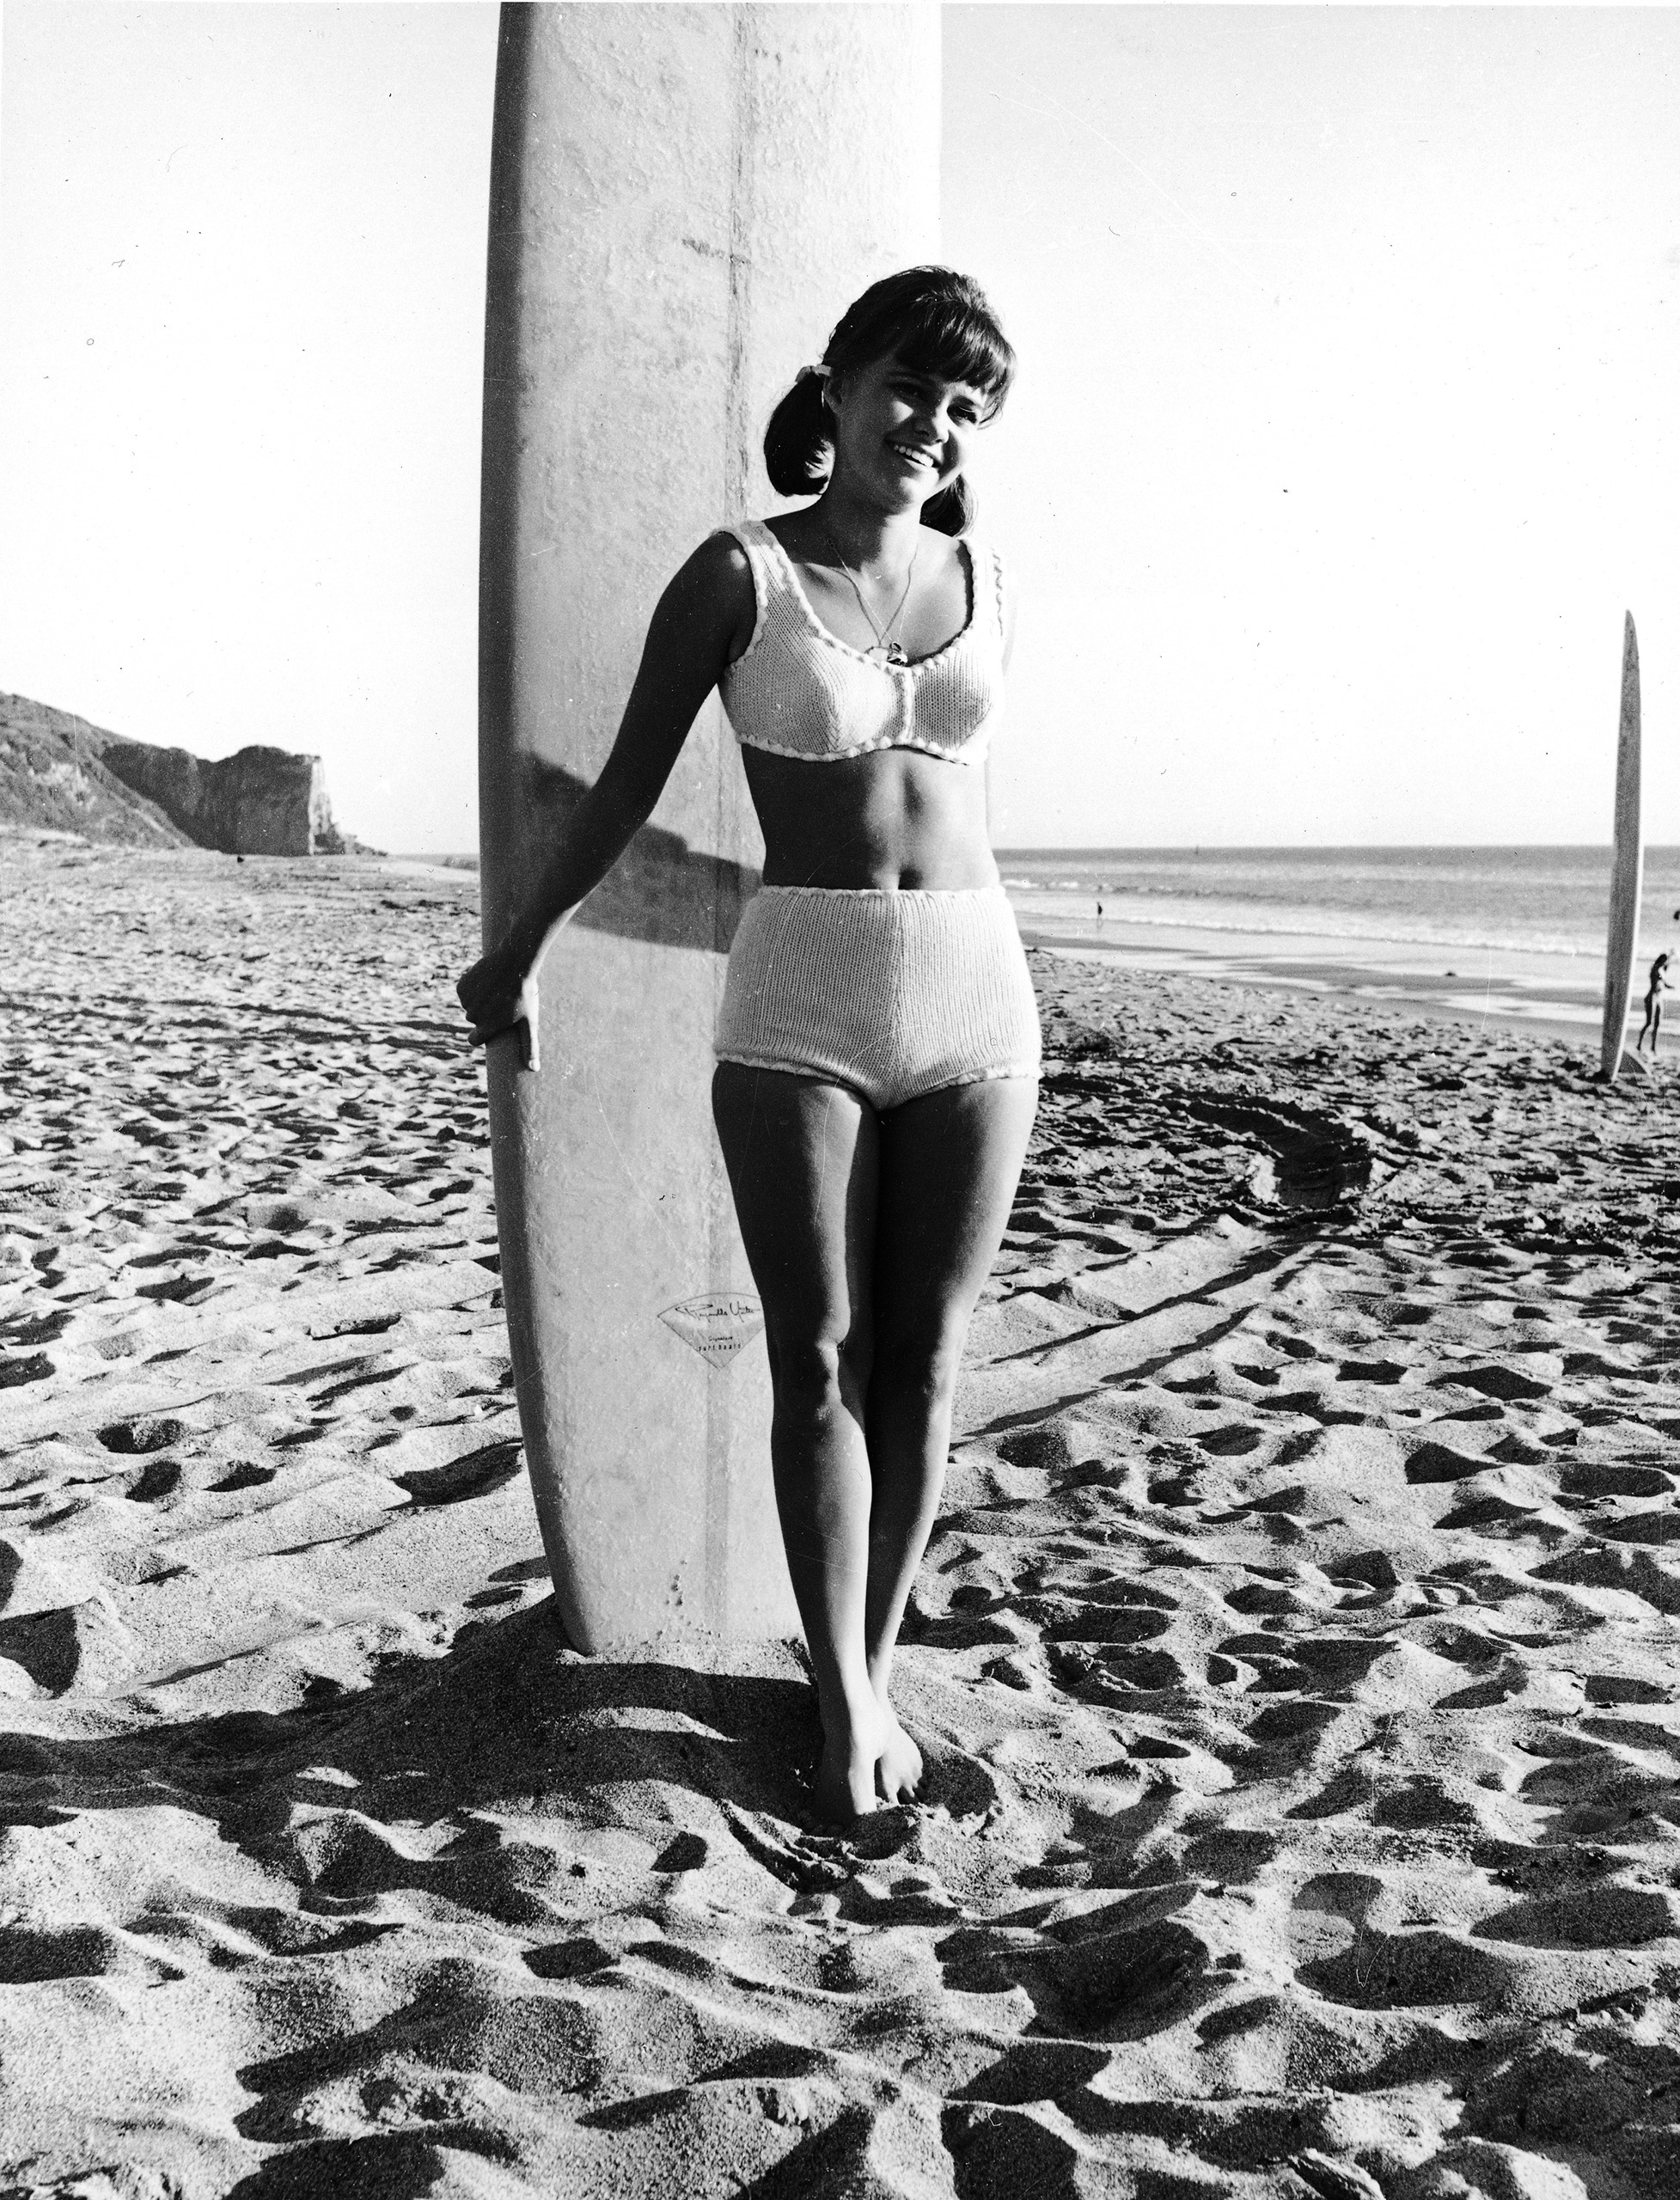 Sally Field from the television series, 'Gidget,' posing in a swimsuit with a surfboard on the beach, circa 1965.